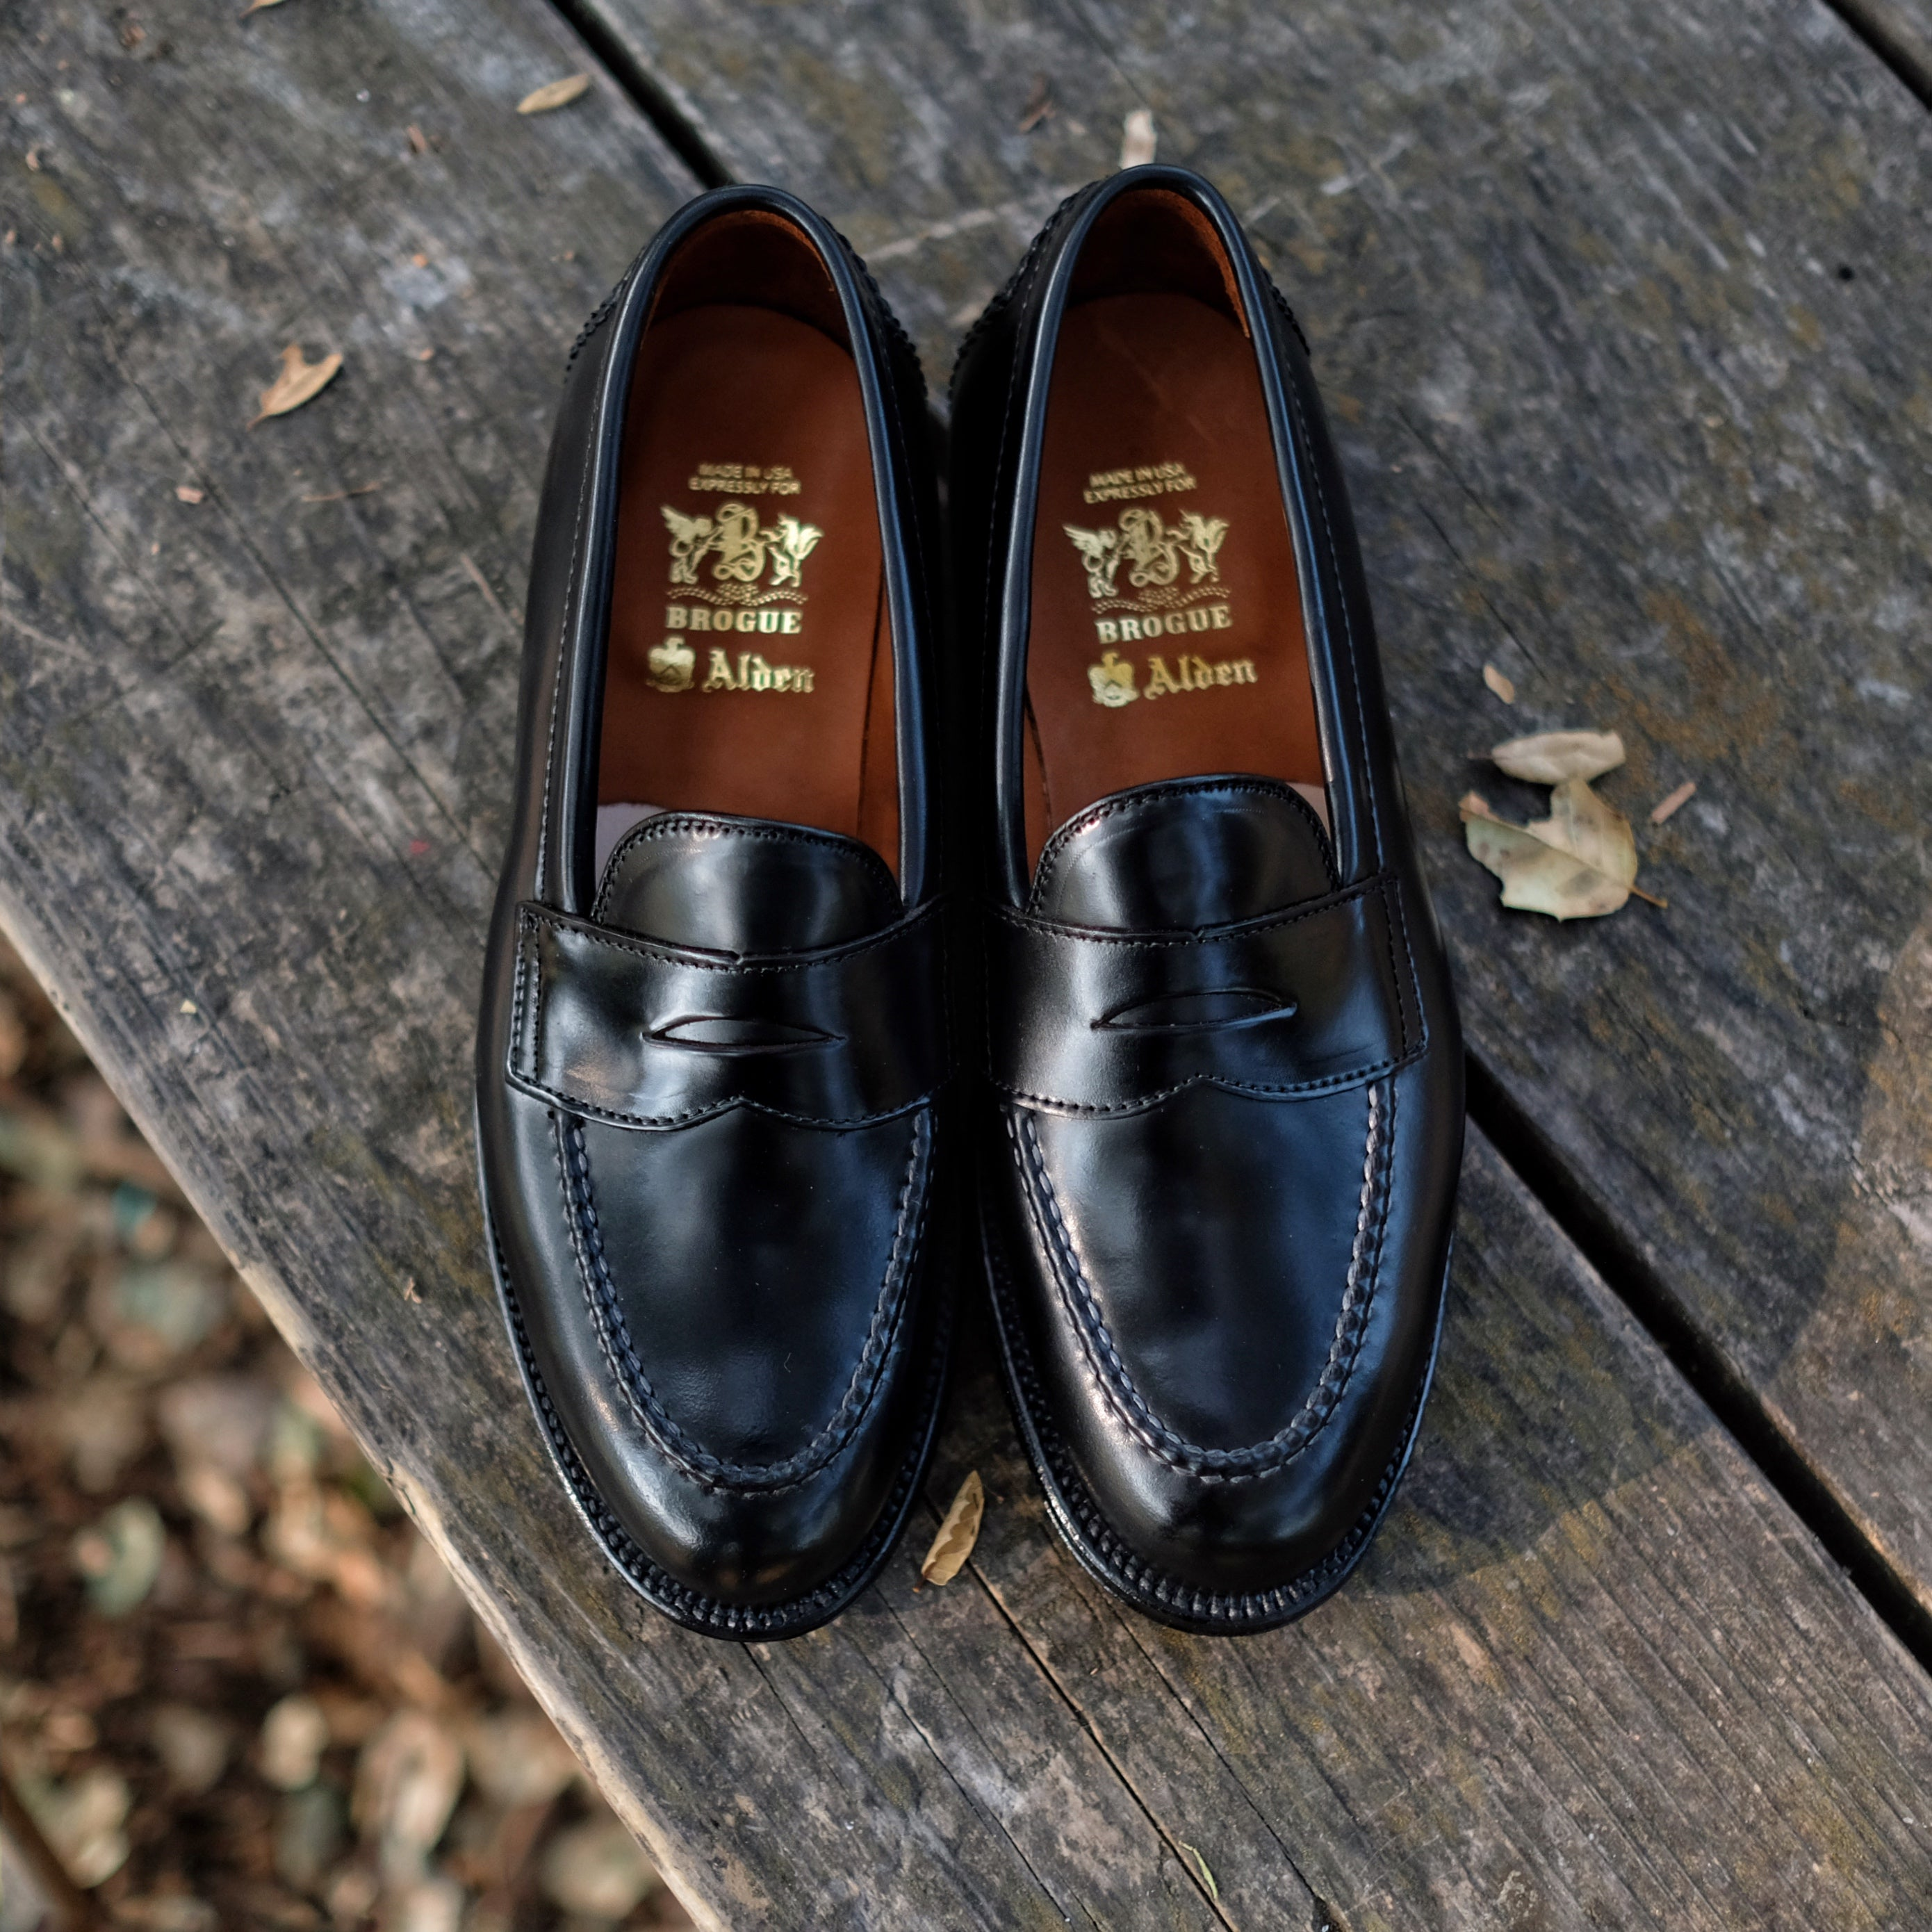 Alden x Brogue Statesman Loafer